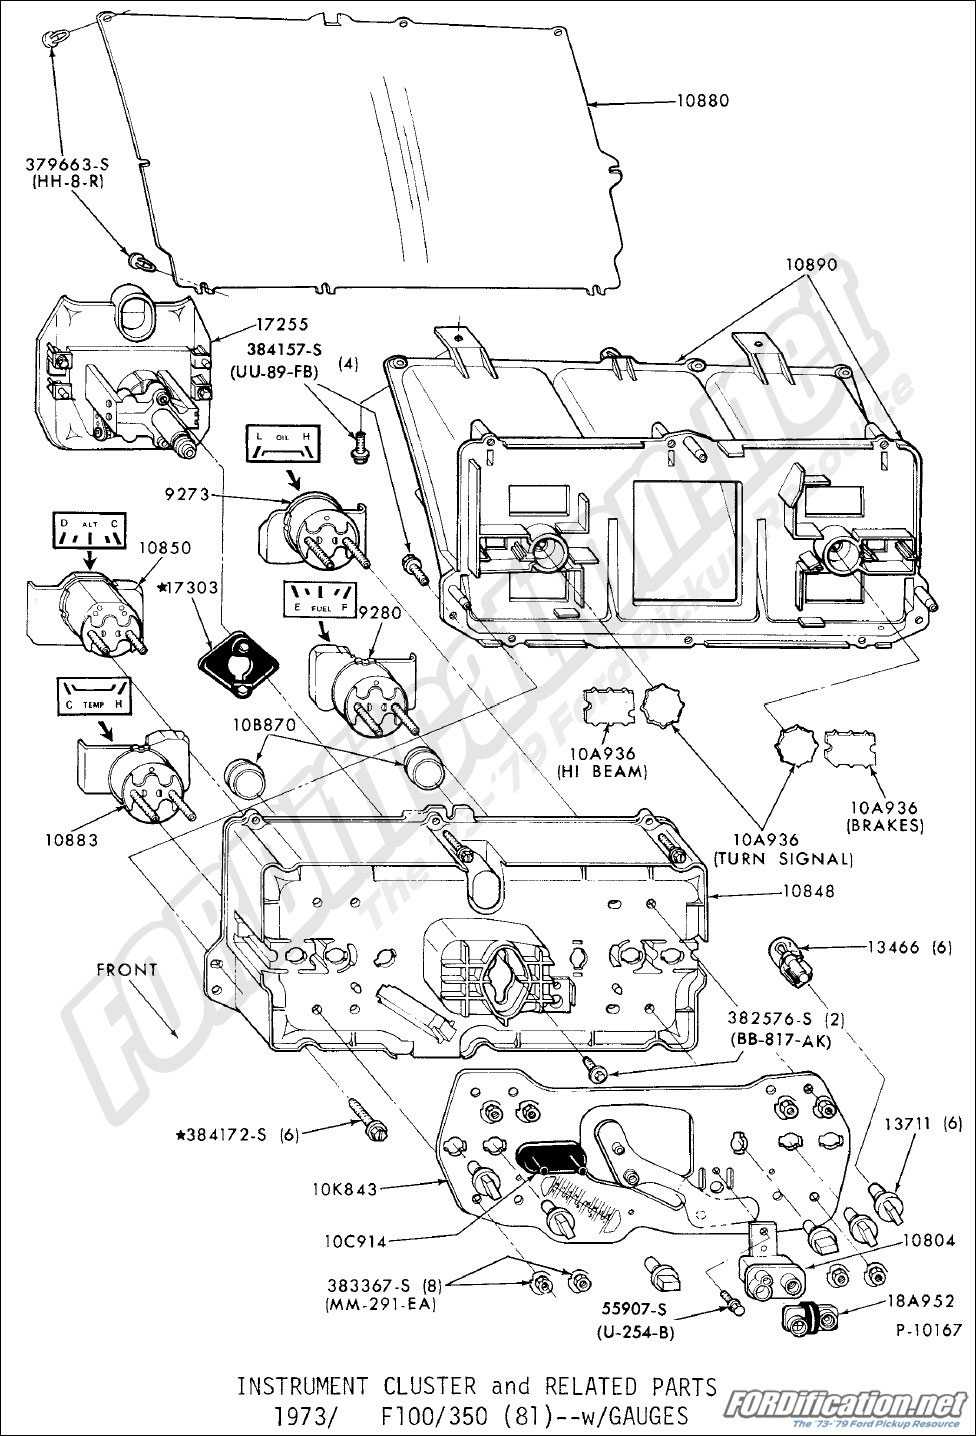 Instrument Cluster Wiring Diagram For 1973 Ford F100